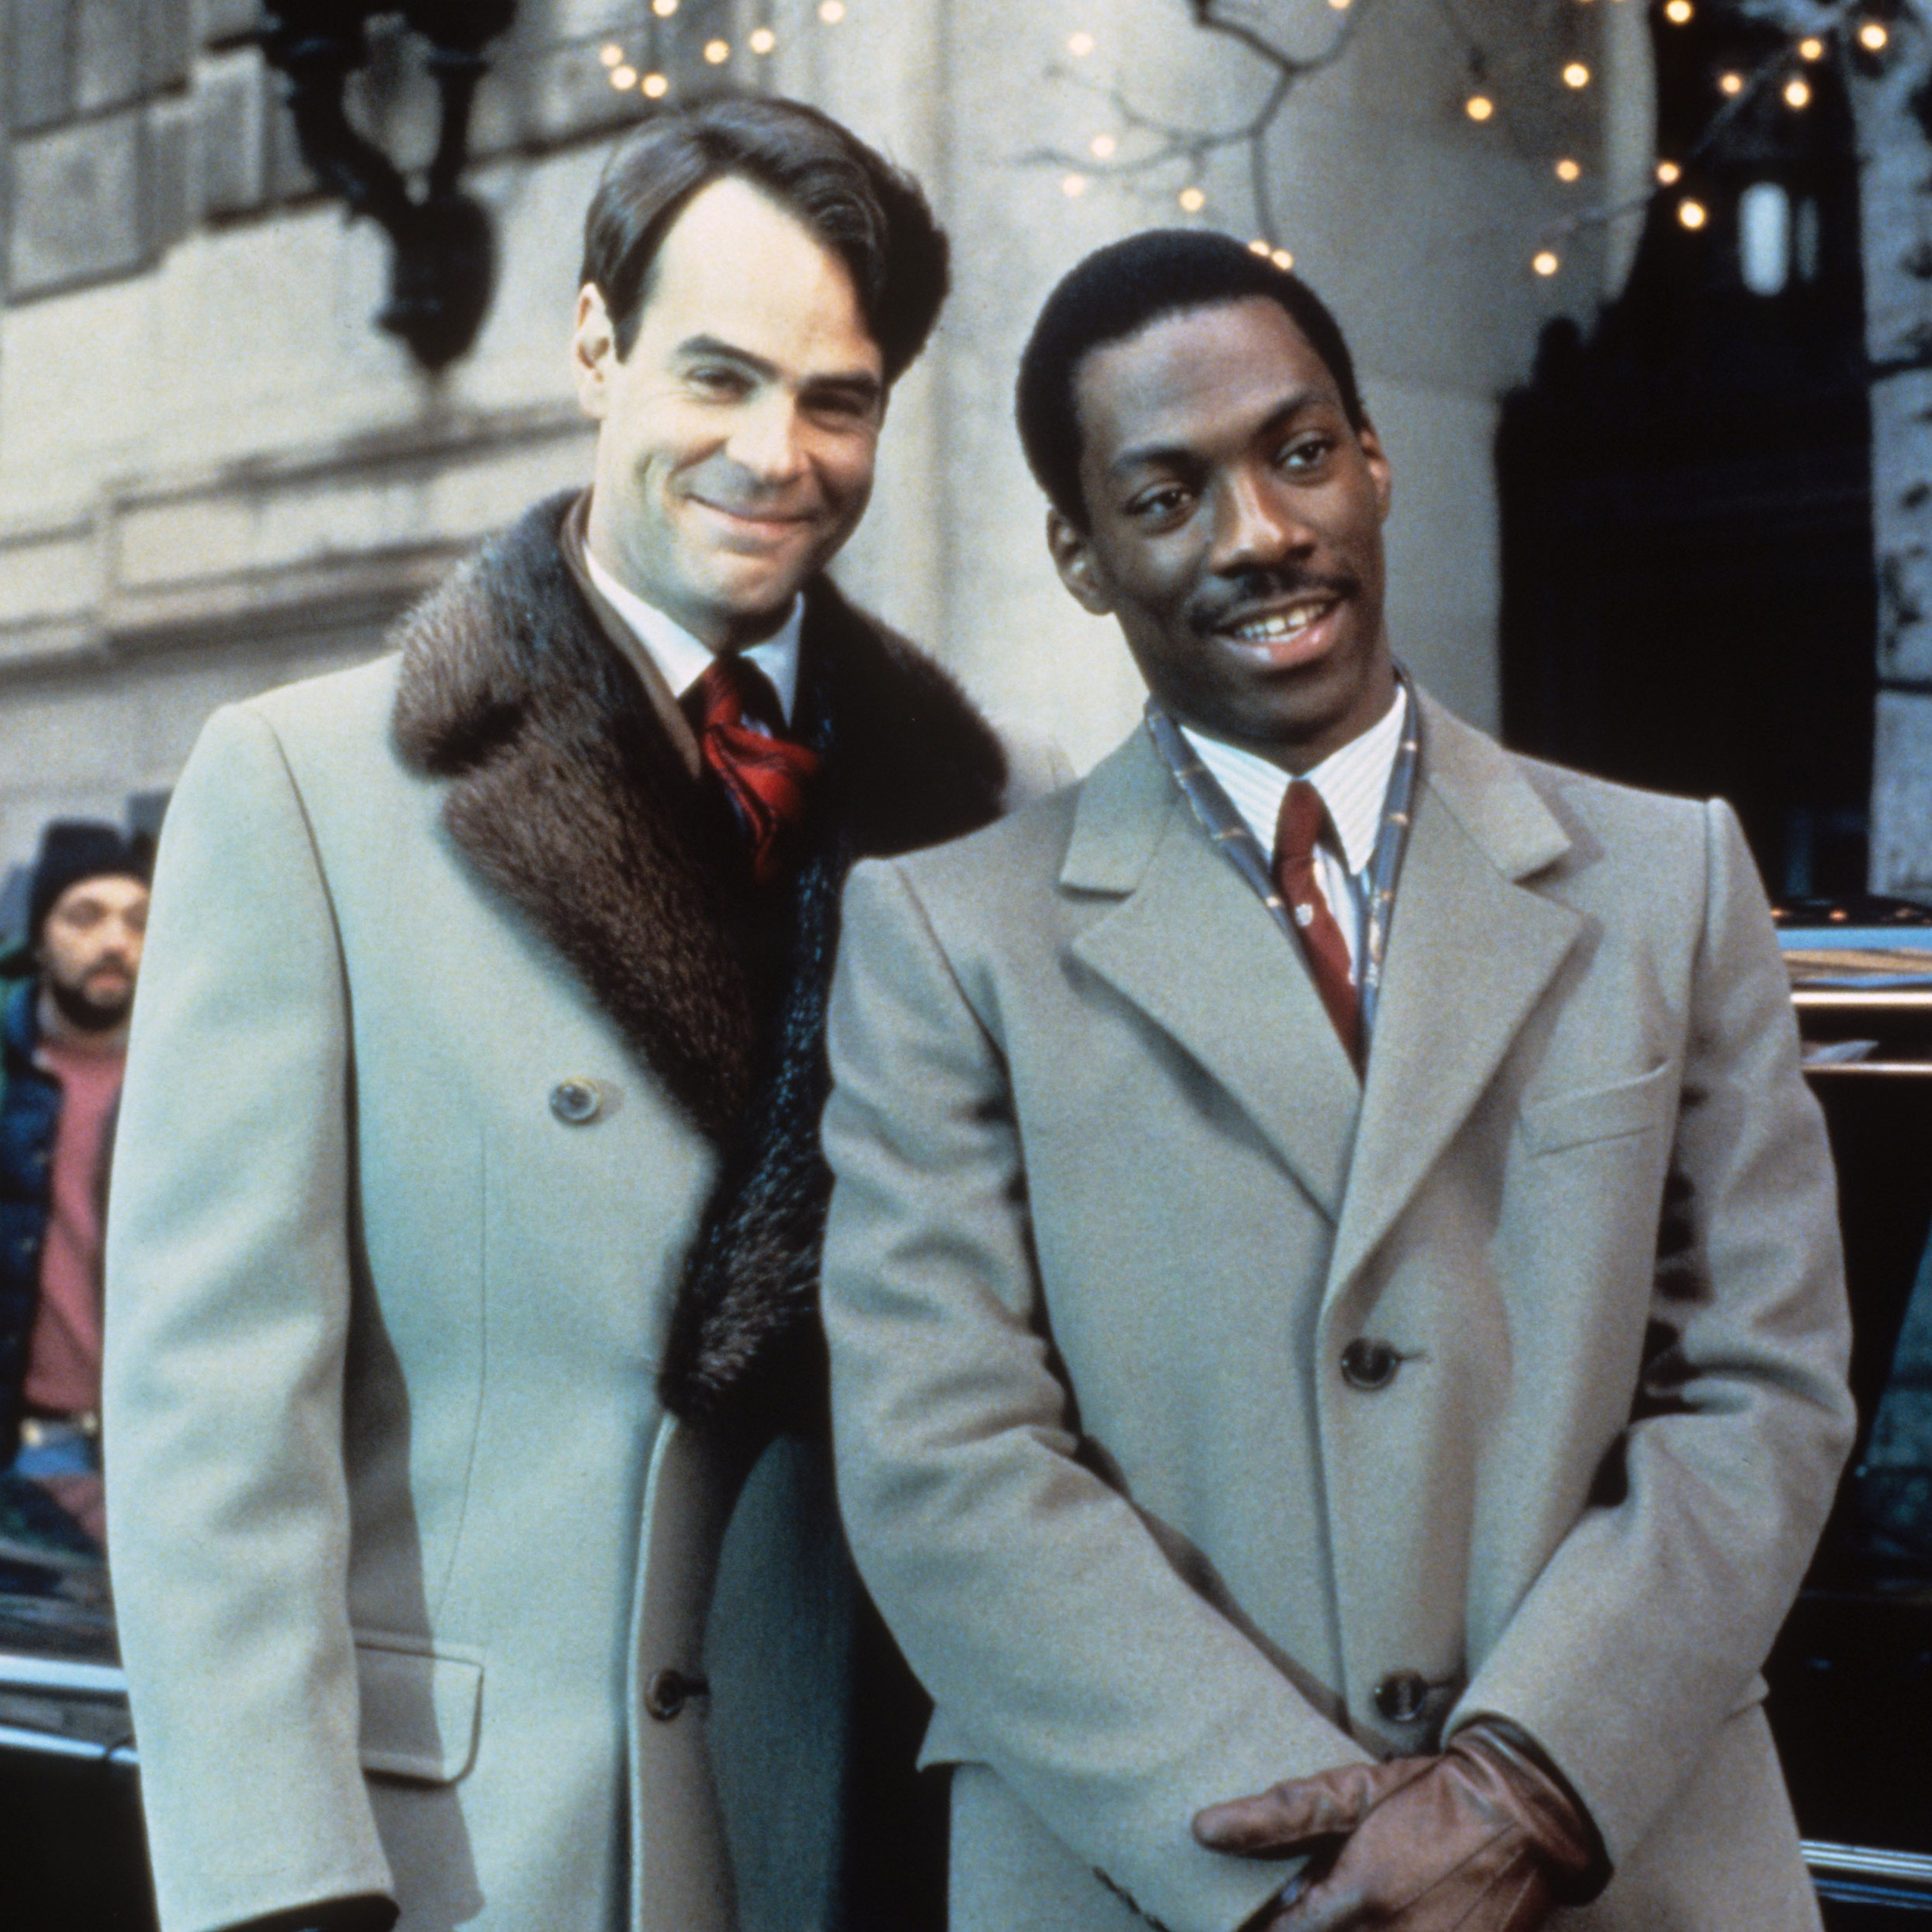 10 Movies Every Prep Should Worship Movies Trading Places